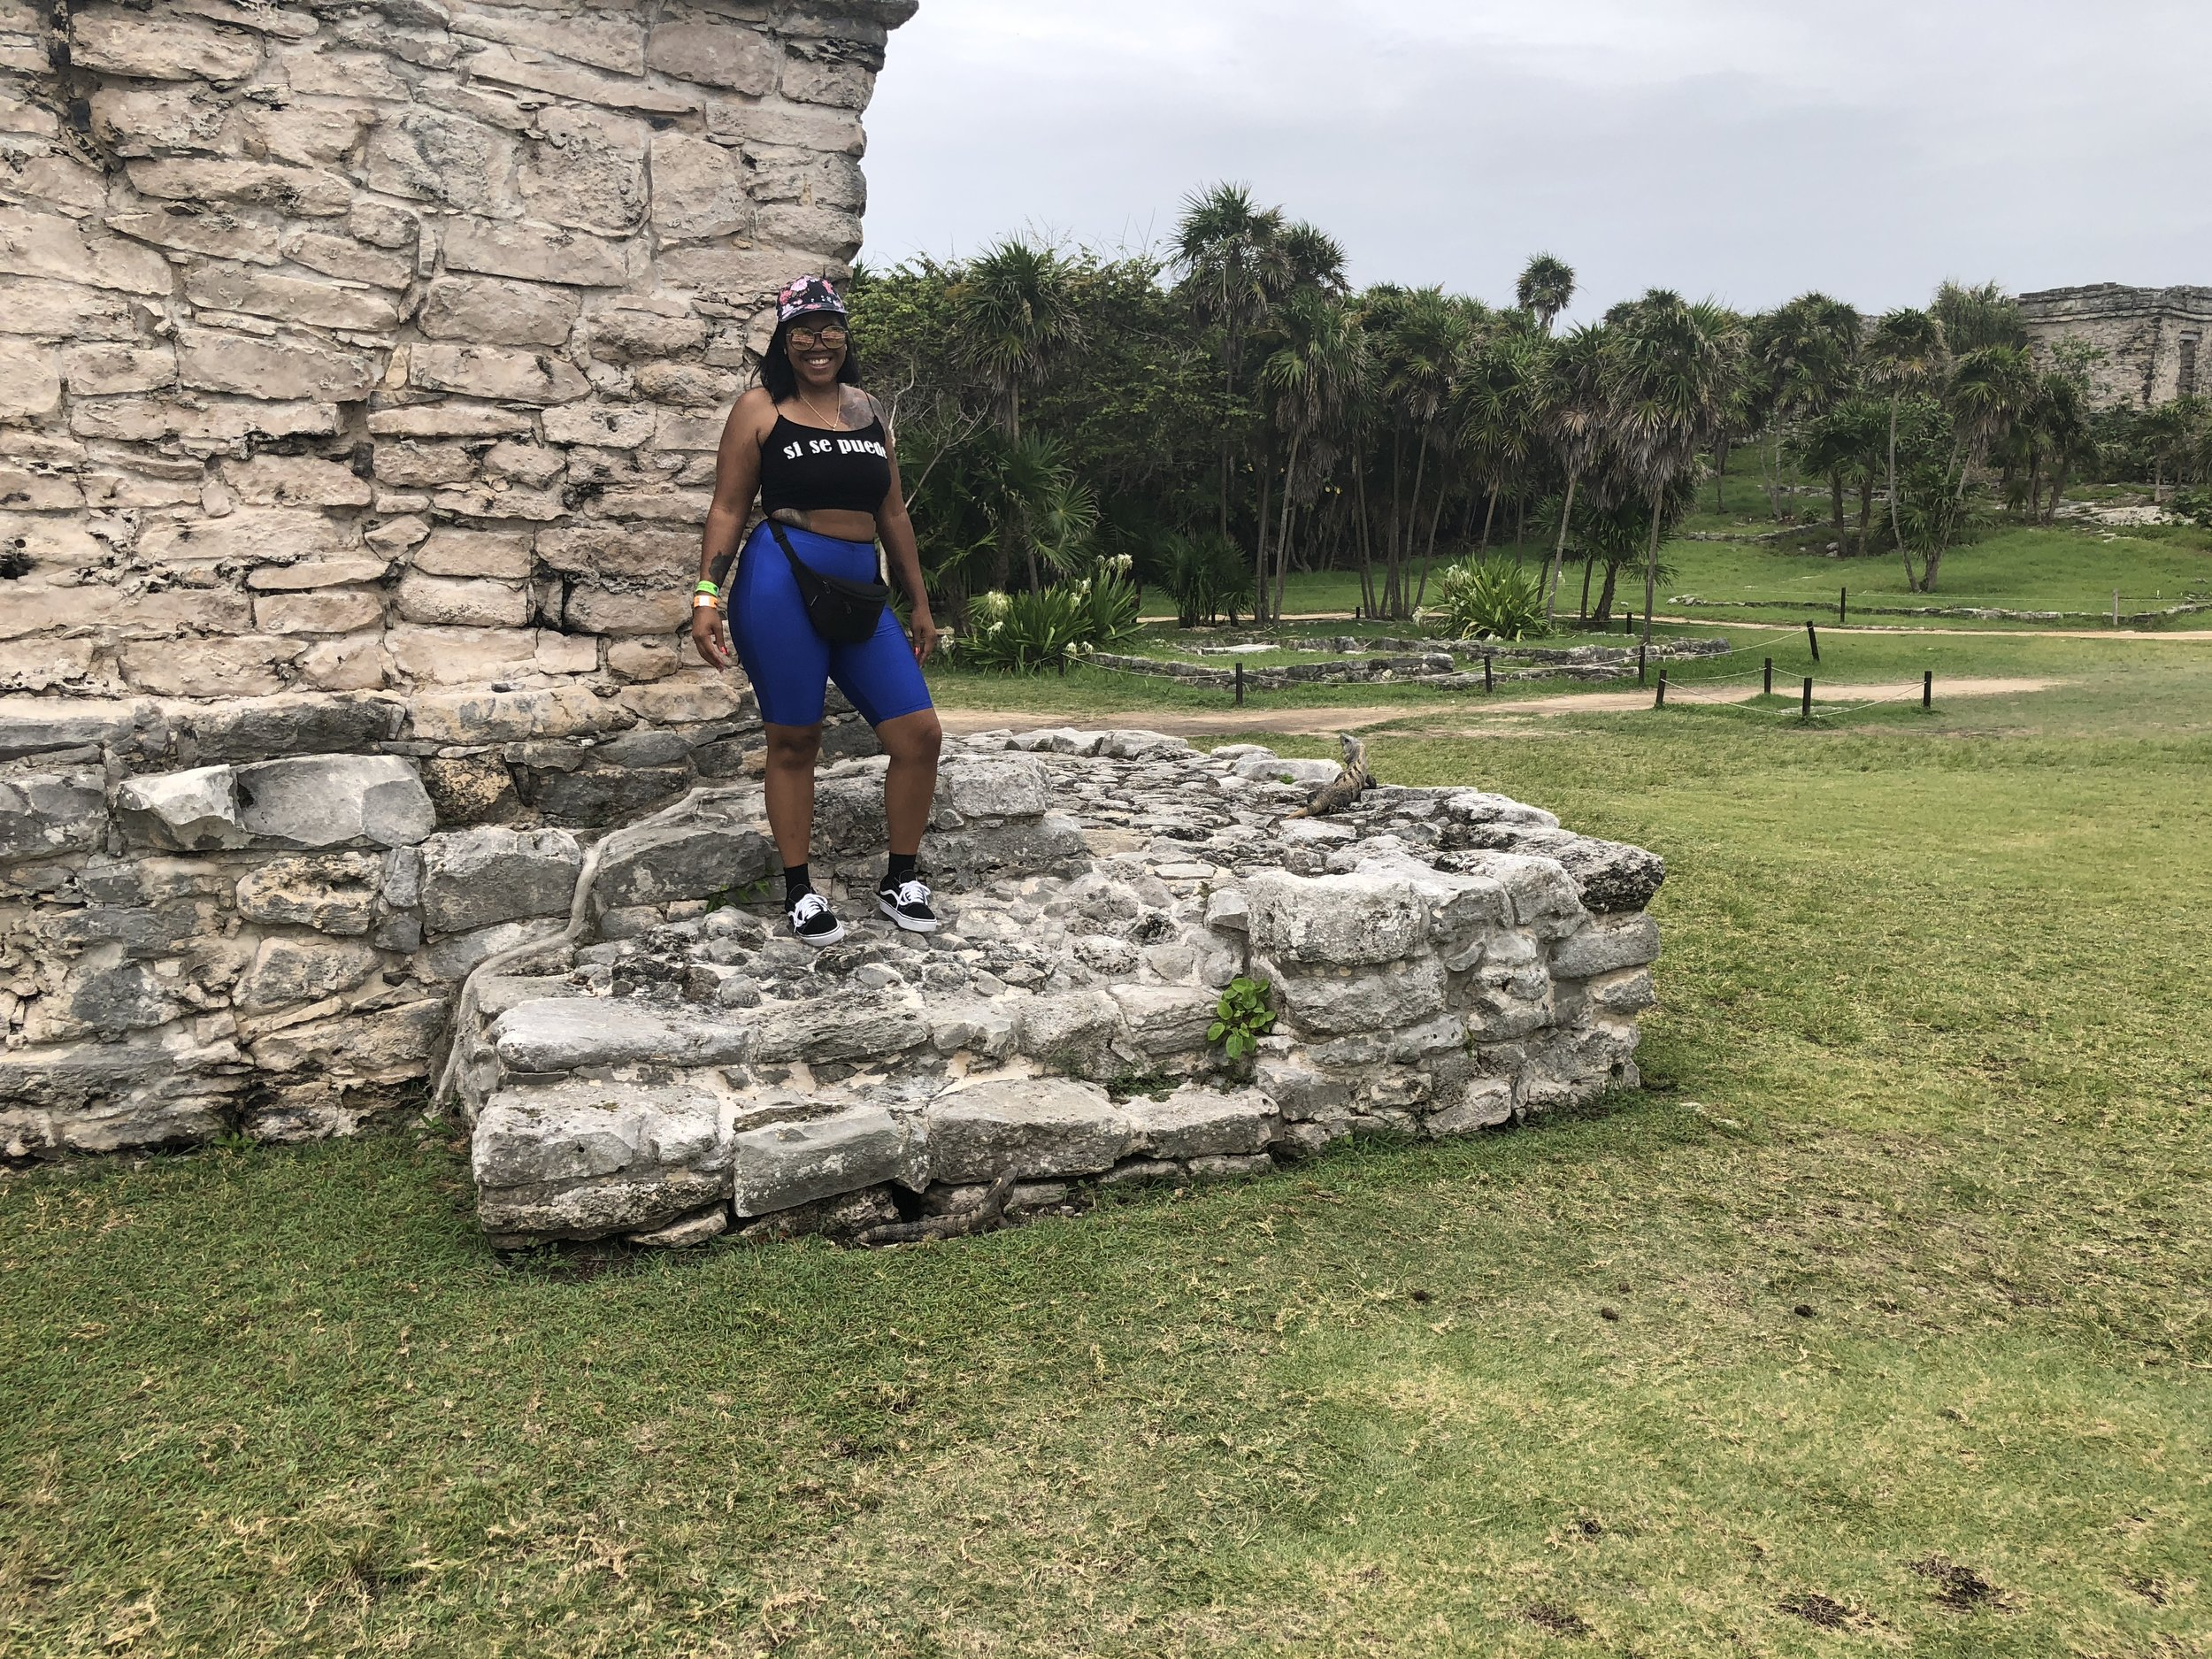 the mayan ruins again but i looked cute lol